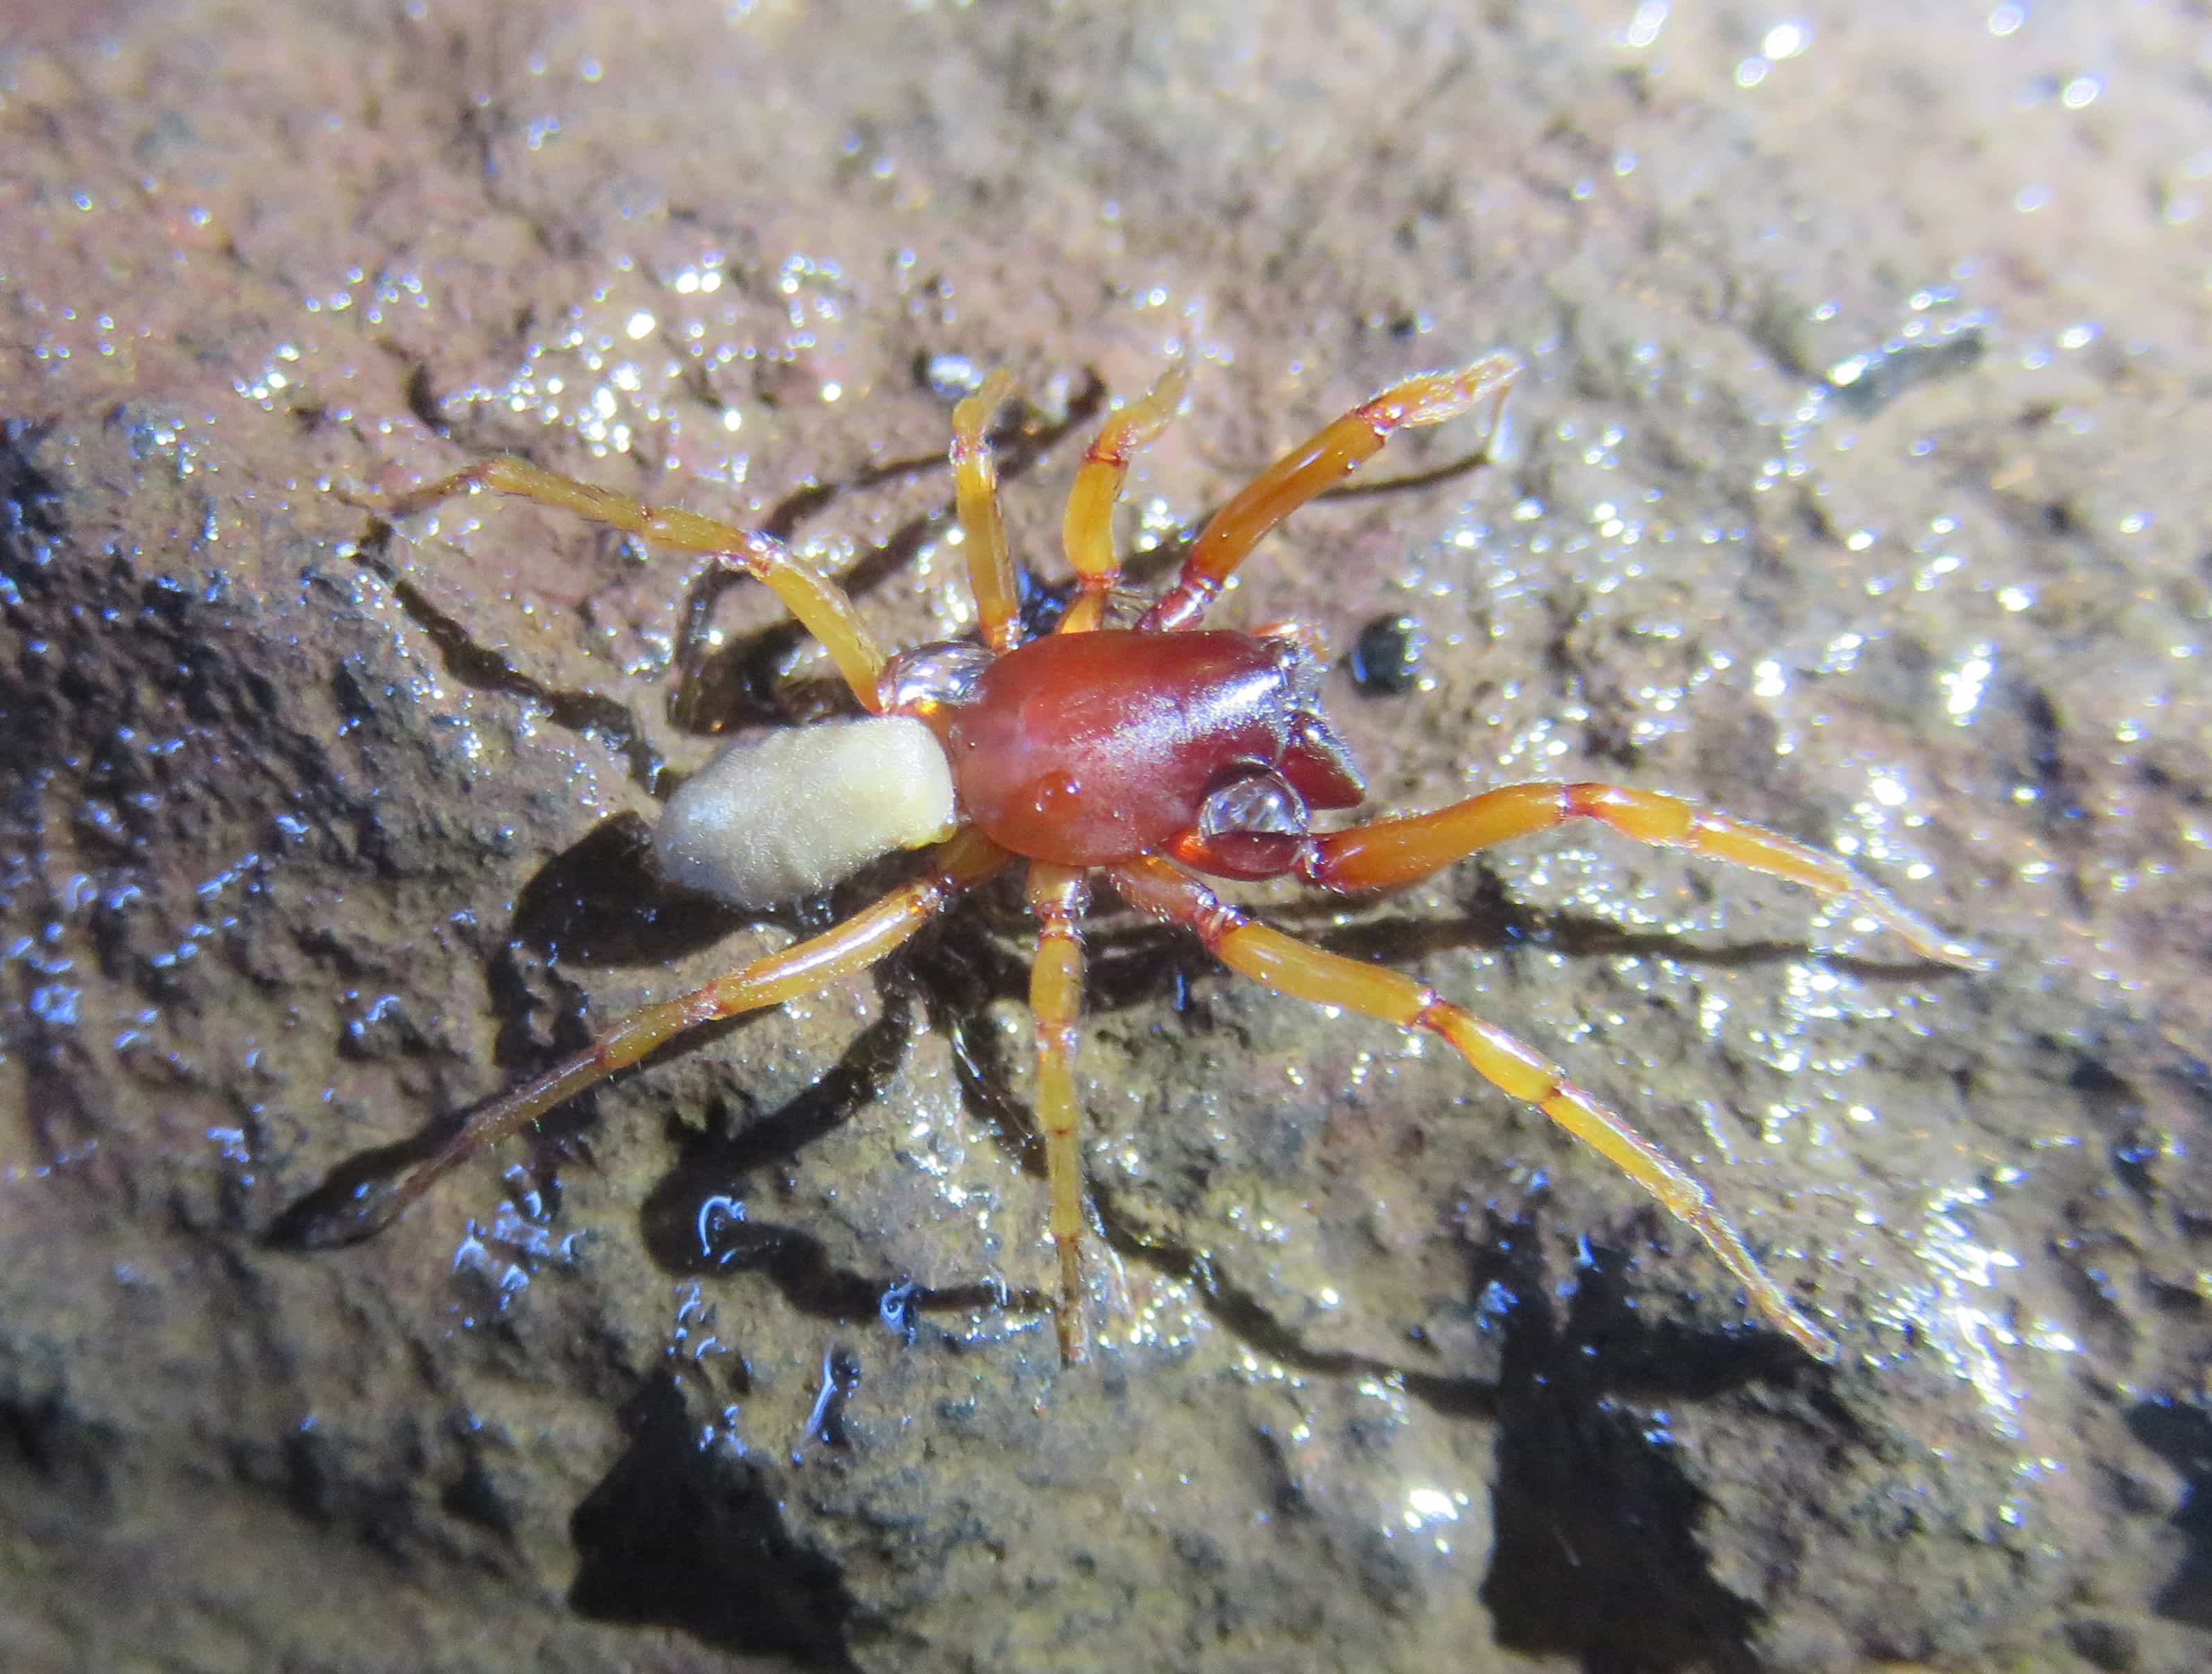 Picture of Dysdera chioensis - Female - Lateral